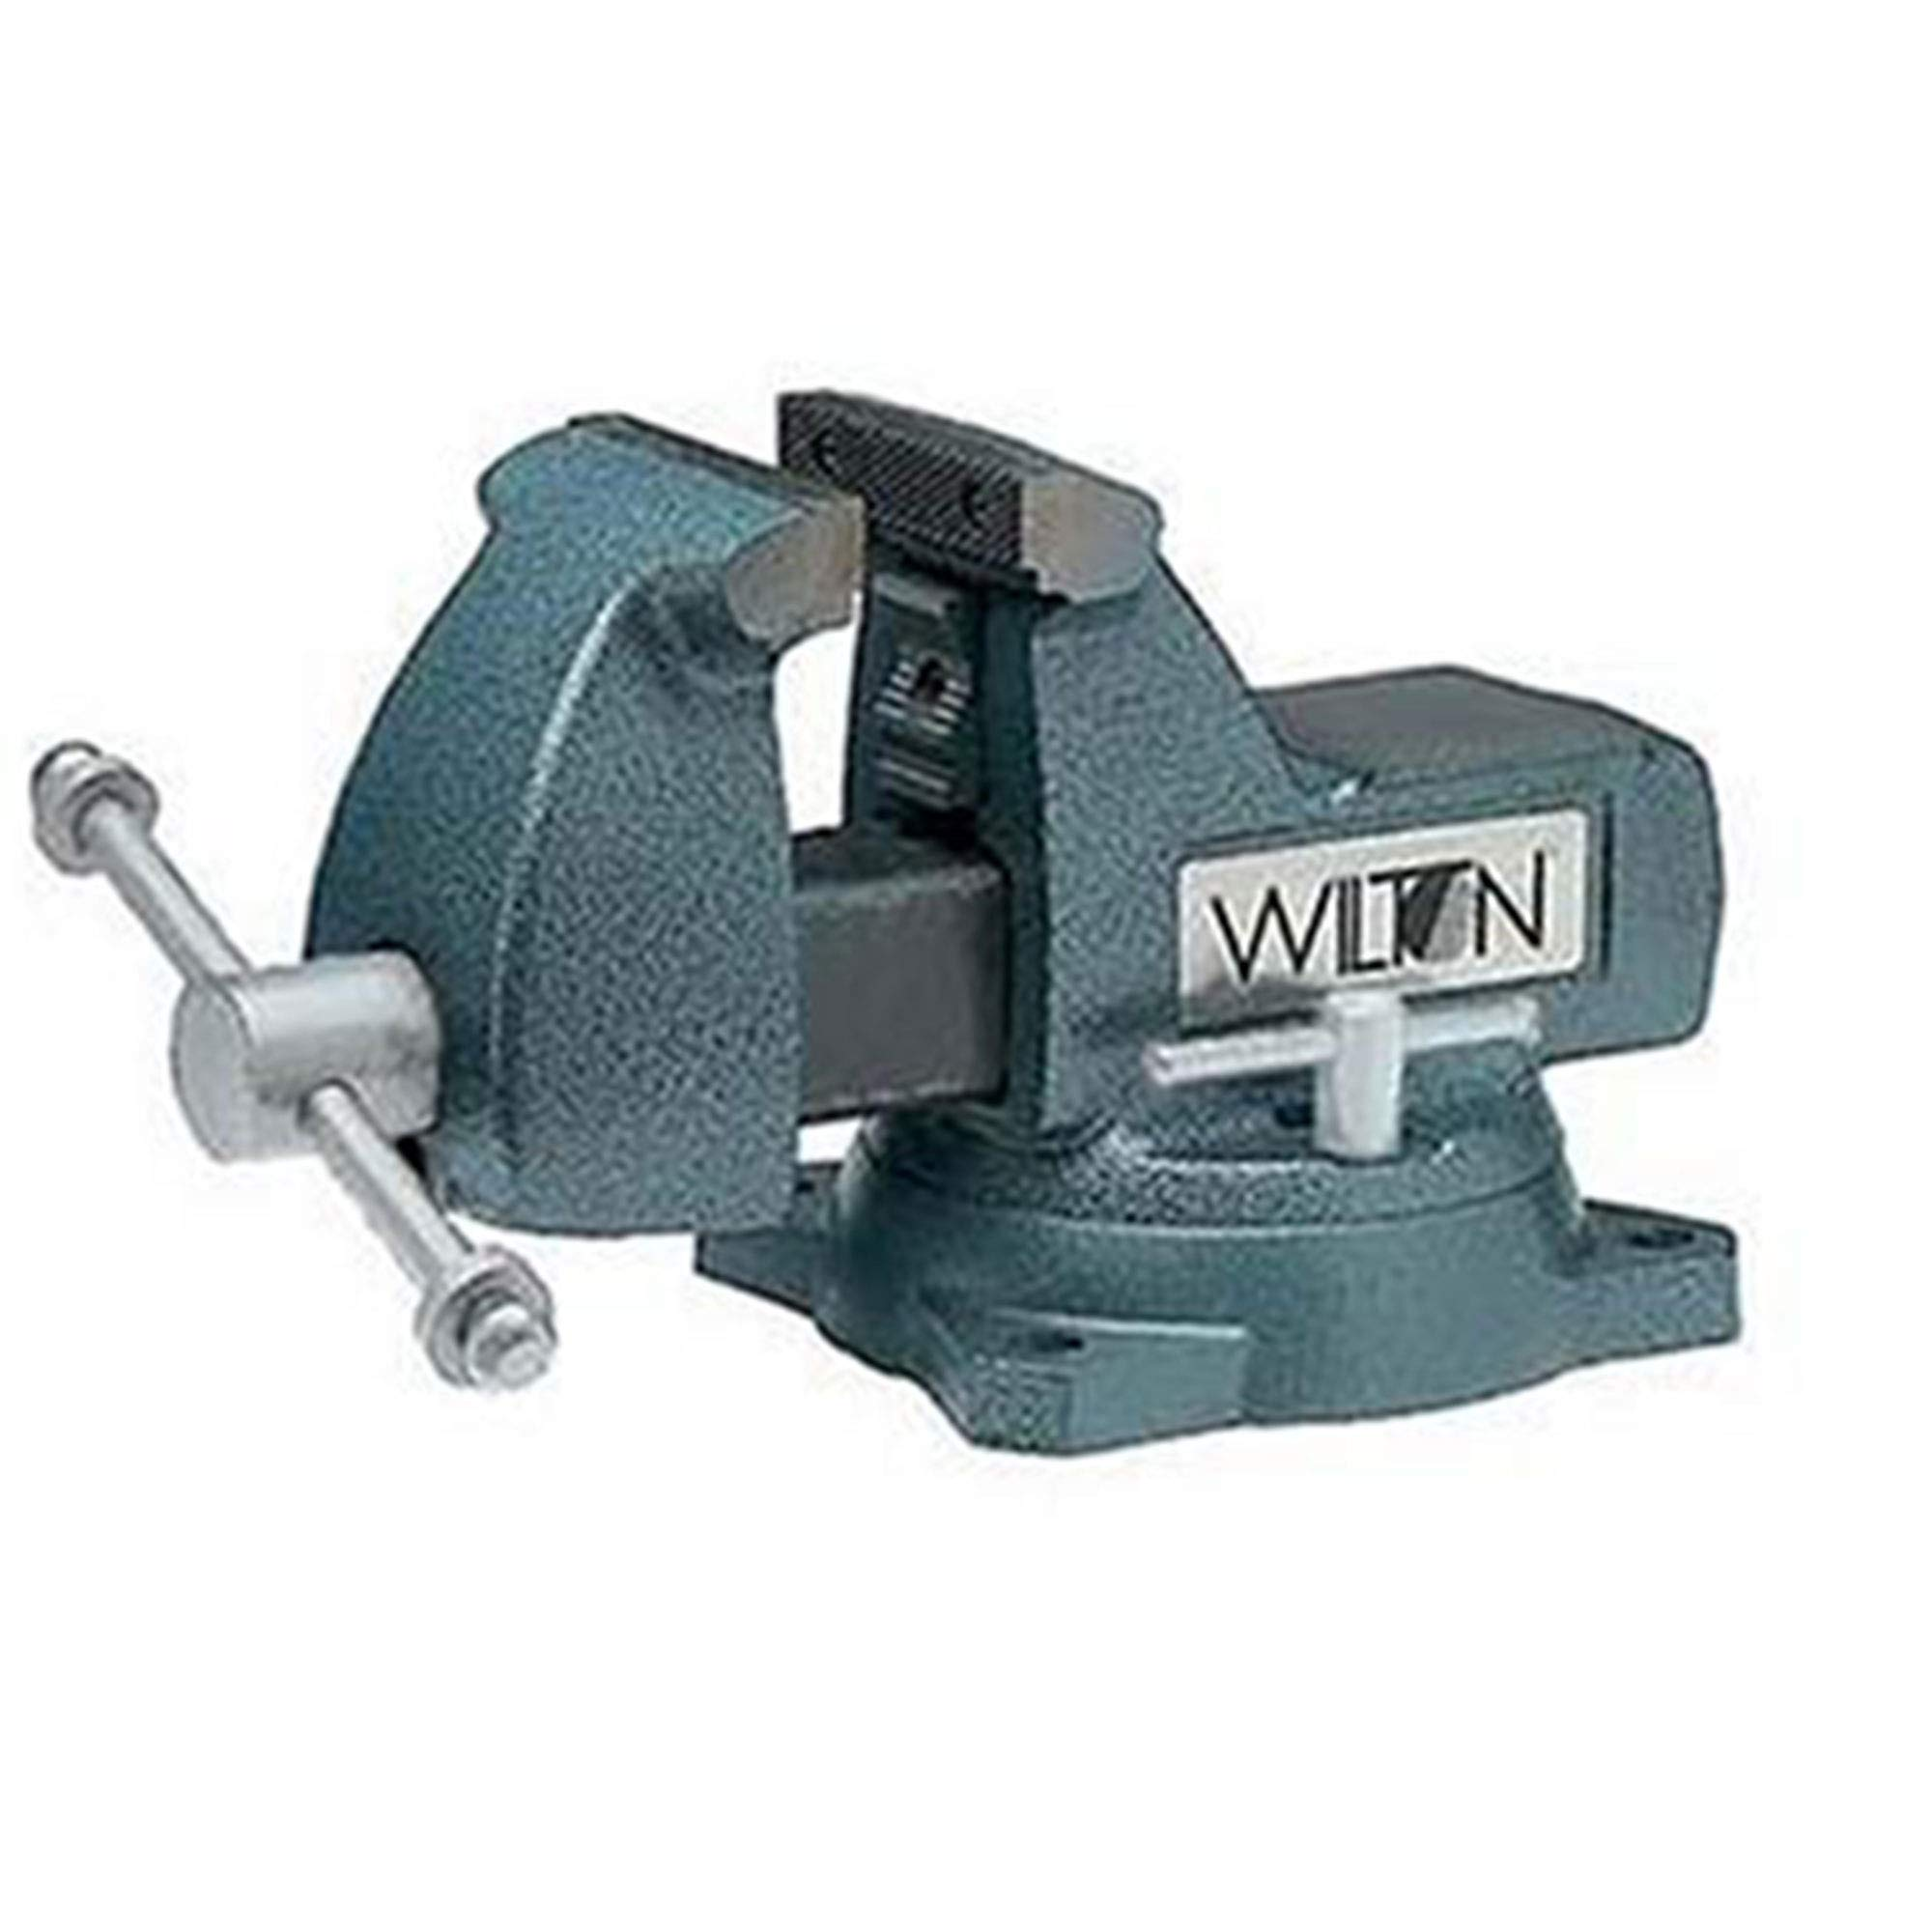 Wilton 21400#745 Mechanics Vise by Wilton